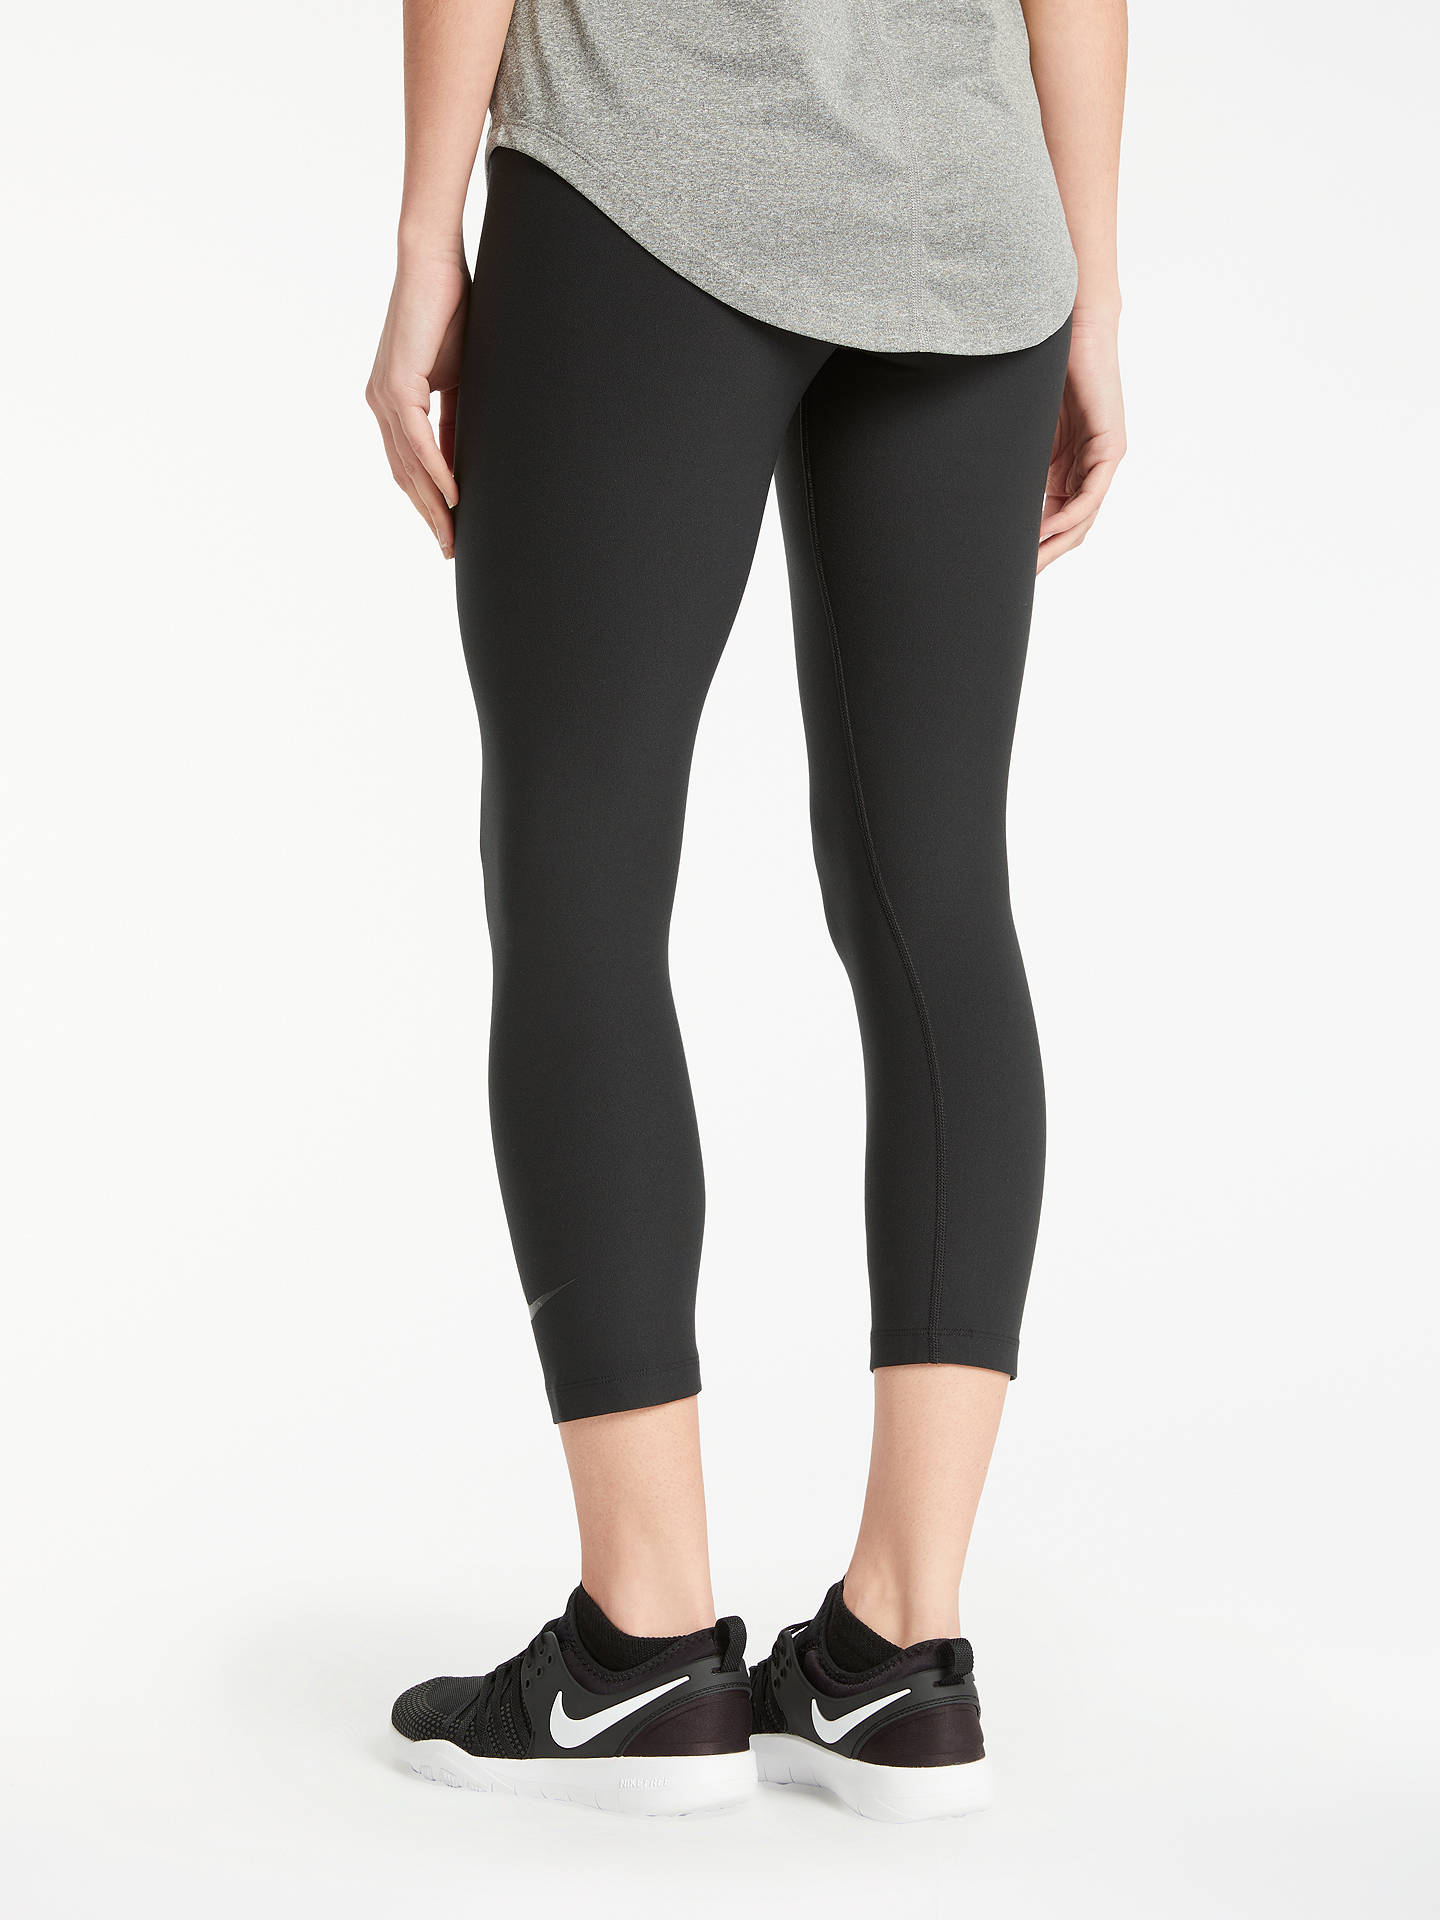 e99388f17912a ... Buy Nike Sculpt Hyper Training Crops, Black, XS Online at johnlewis.com